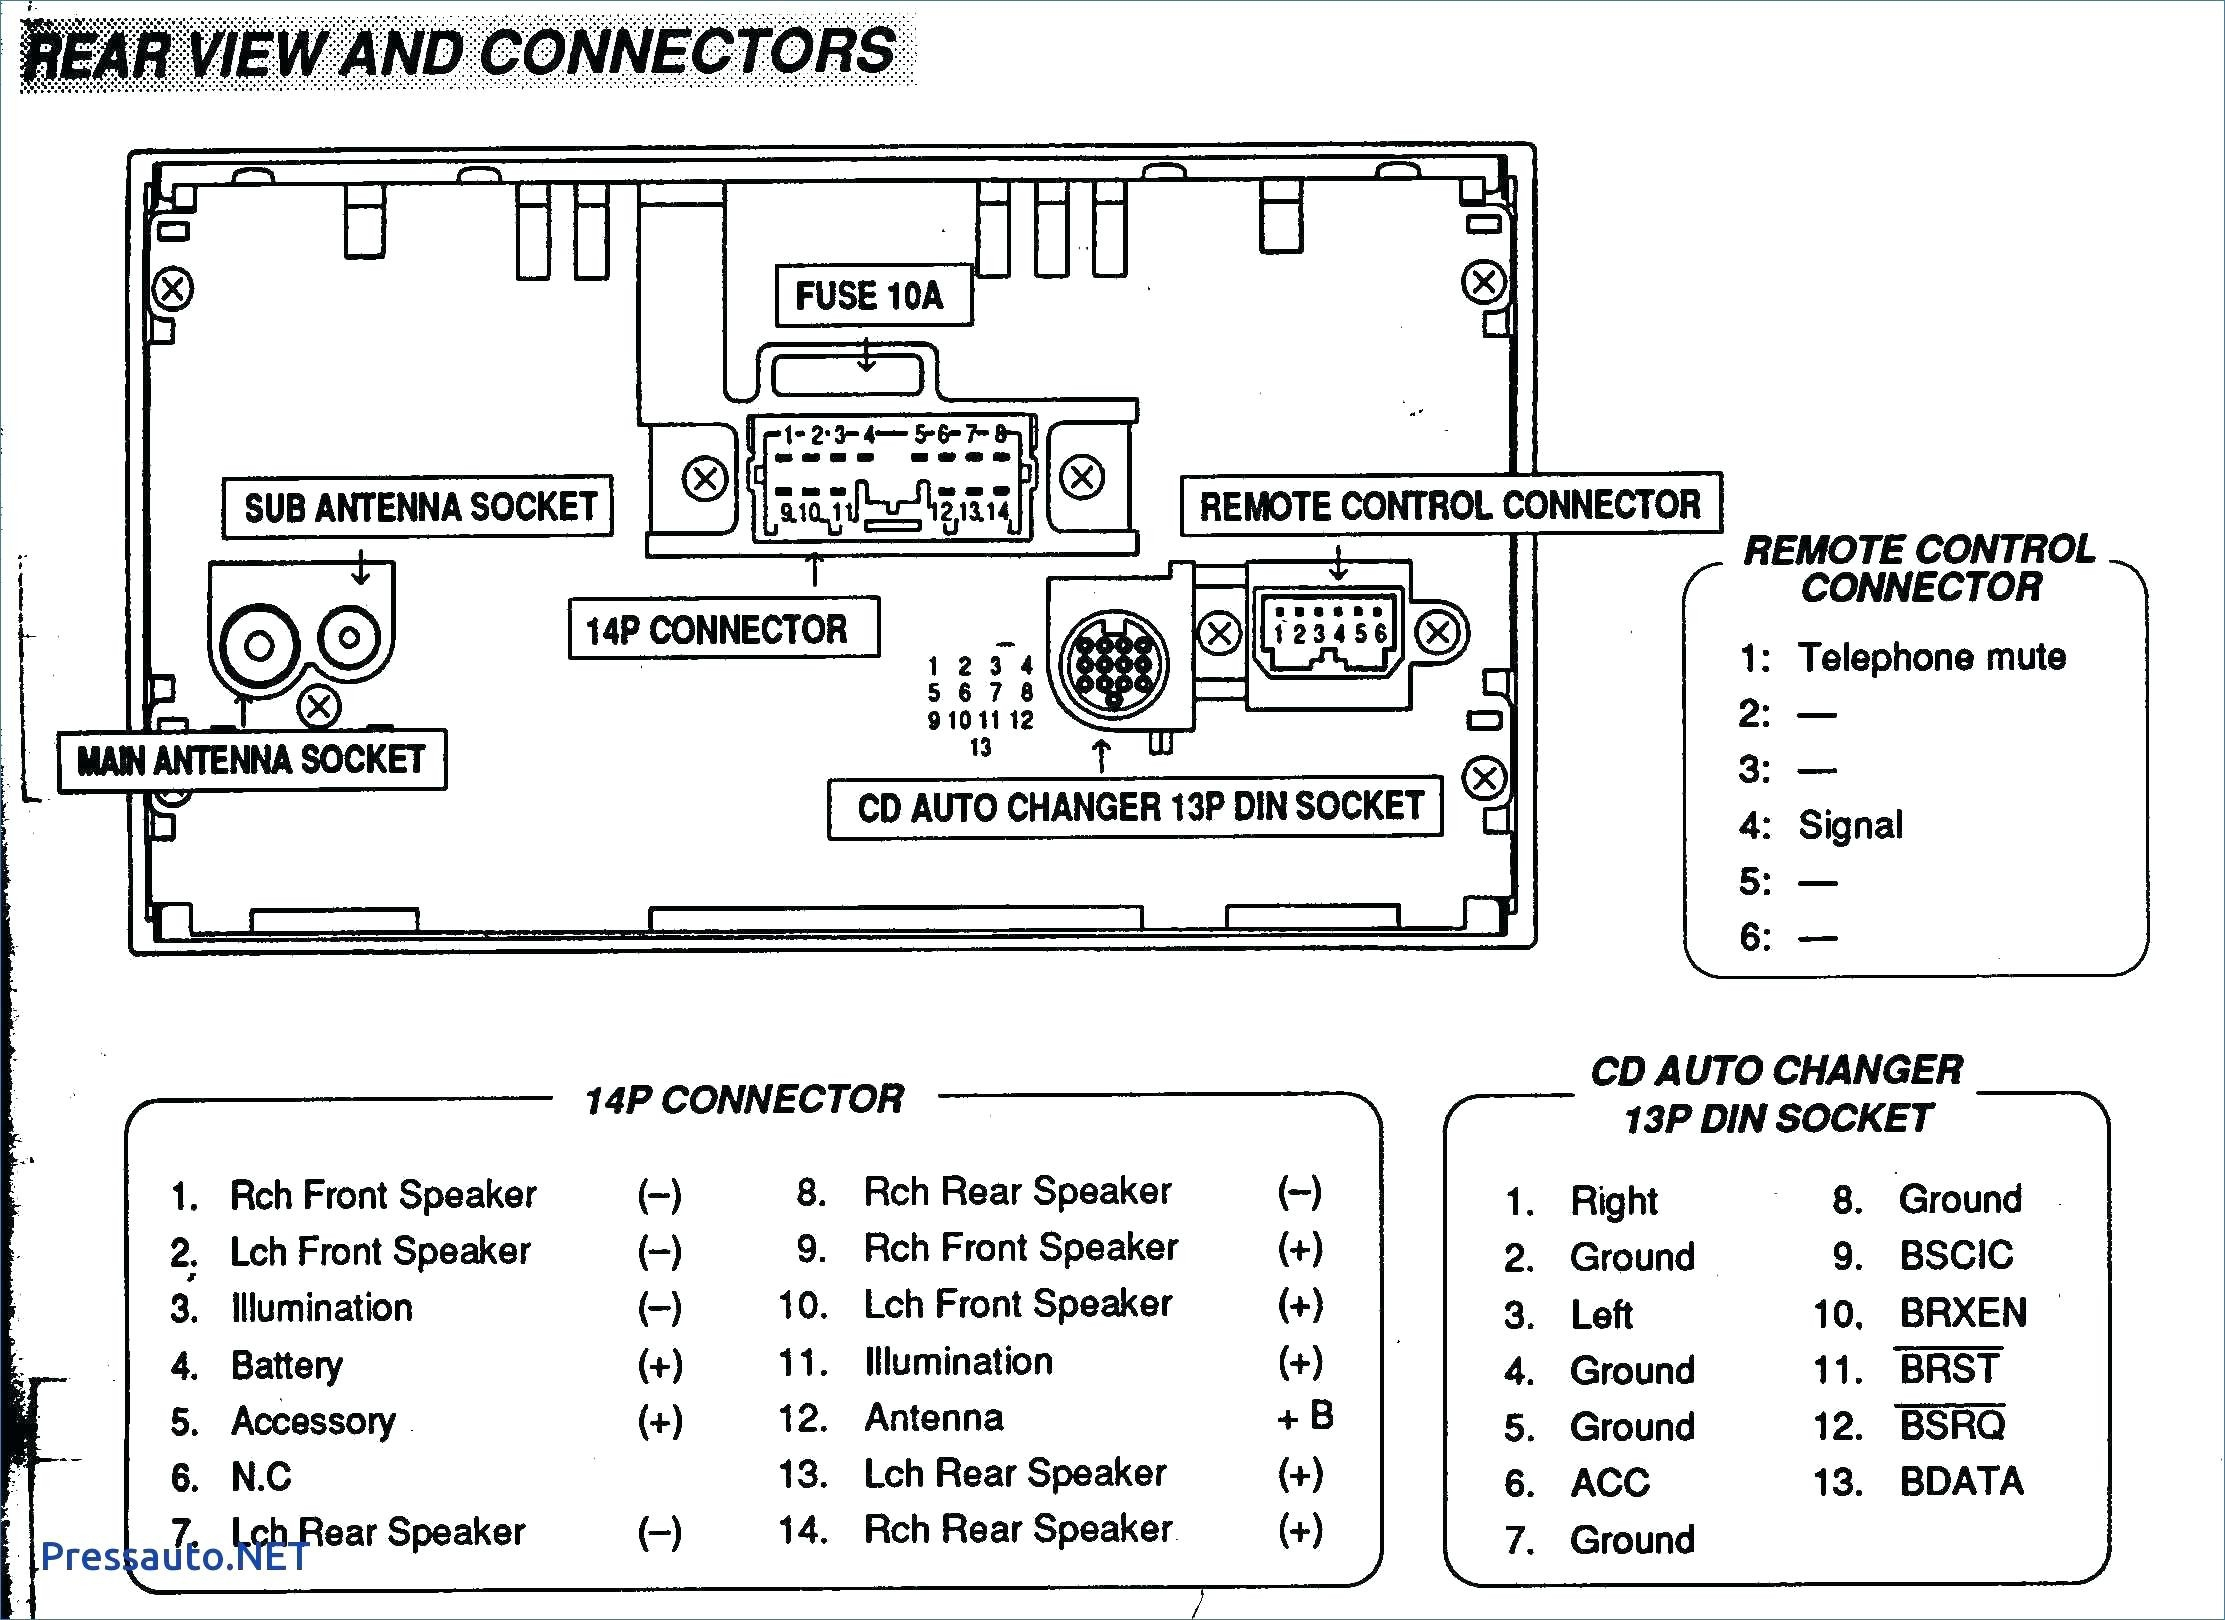 Scion Tc Wiring Diagram - 2007 Scion Tc Stereo Wiring Diagram 2007 Scion Tc Radio Wiring Diagram Fresh Volvo Ac 19e